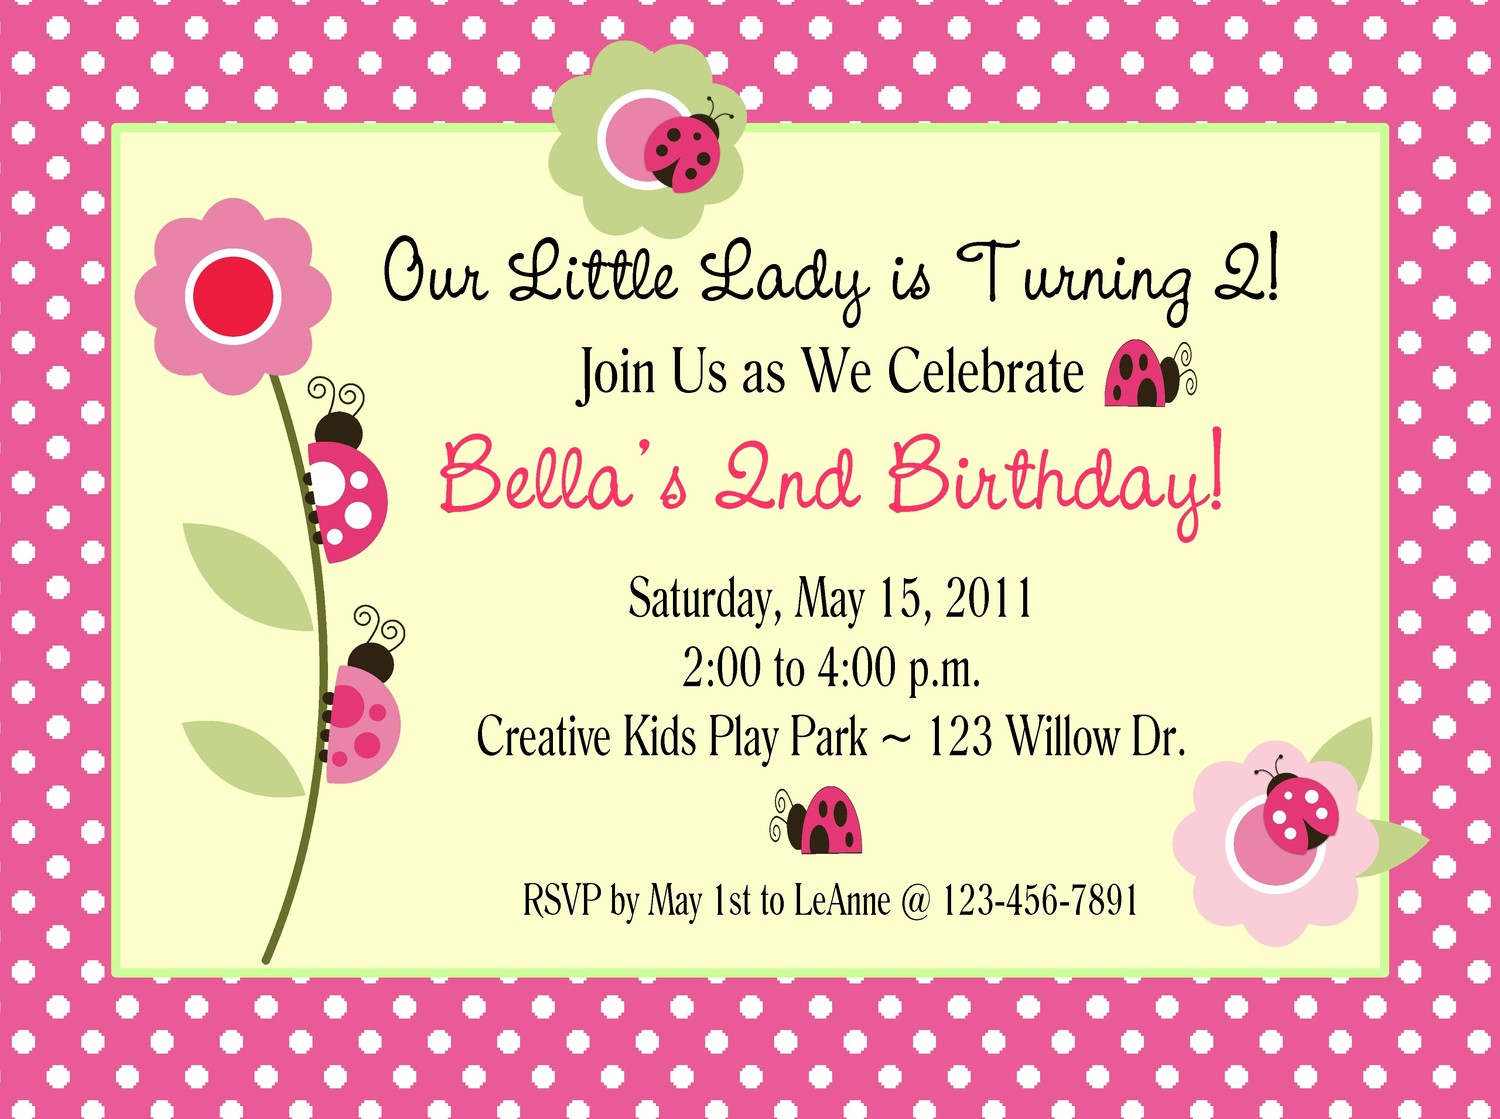 an invitation to birthday party ; Birthday-Party-Invitations-Is-One-Of-The-Best-Idea-For-You-To-Make-Your-Own-Party-Invitation-Design-Contemporary-Art-You-Are-Invited-To-A-Birthday-Party